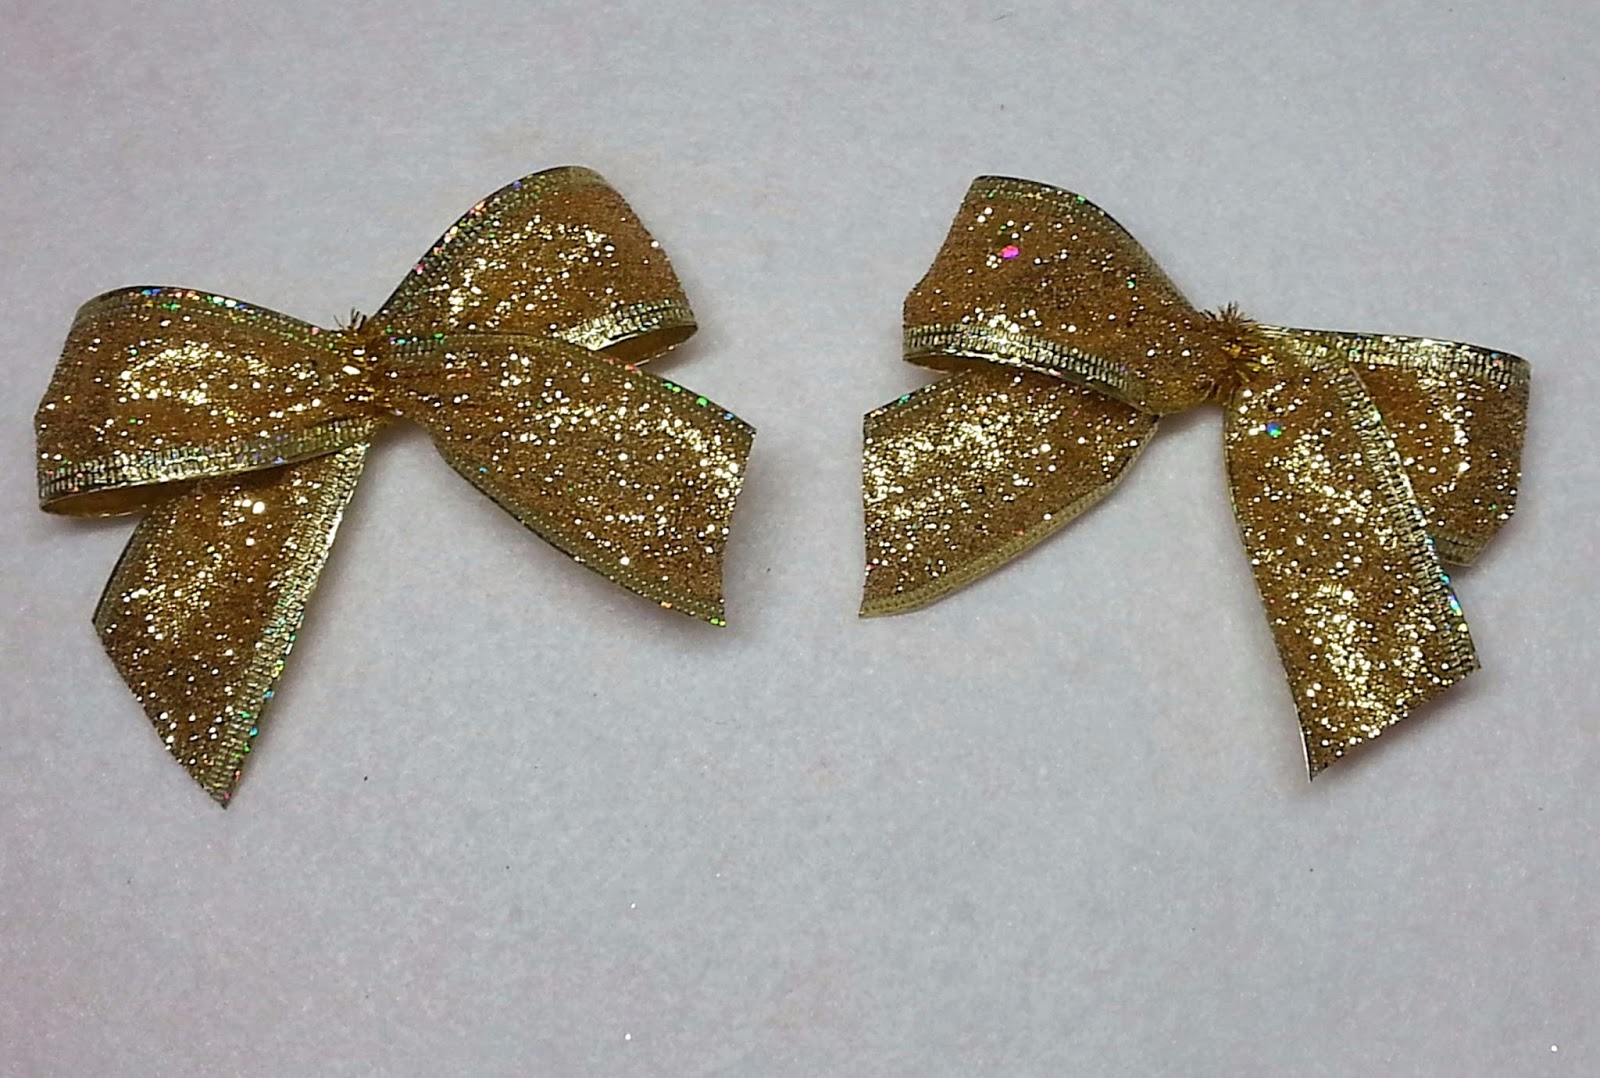 DIY~Make Super Easy Bows For Wreath Ornaments, Angel Wings, Boxes ...